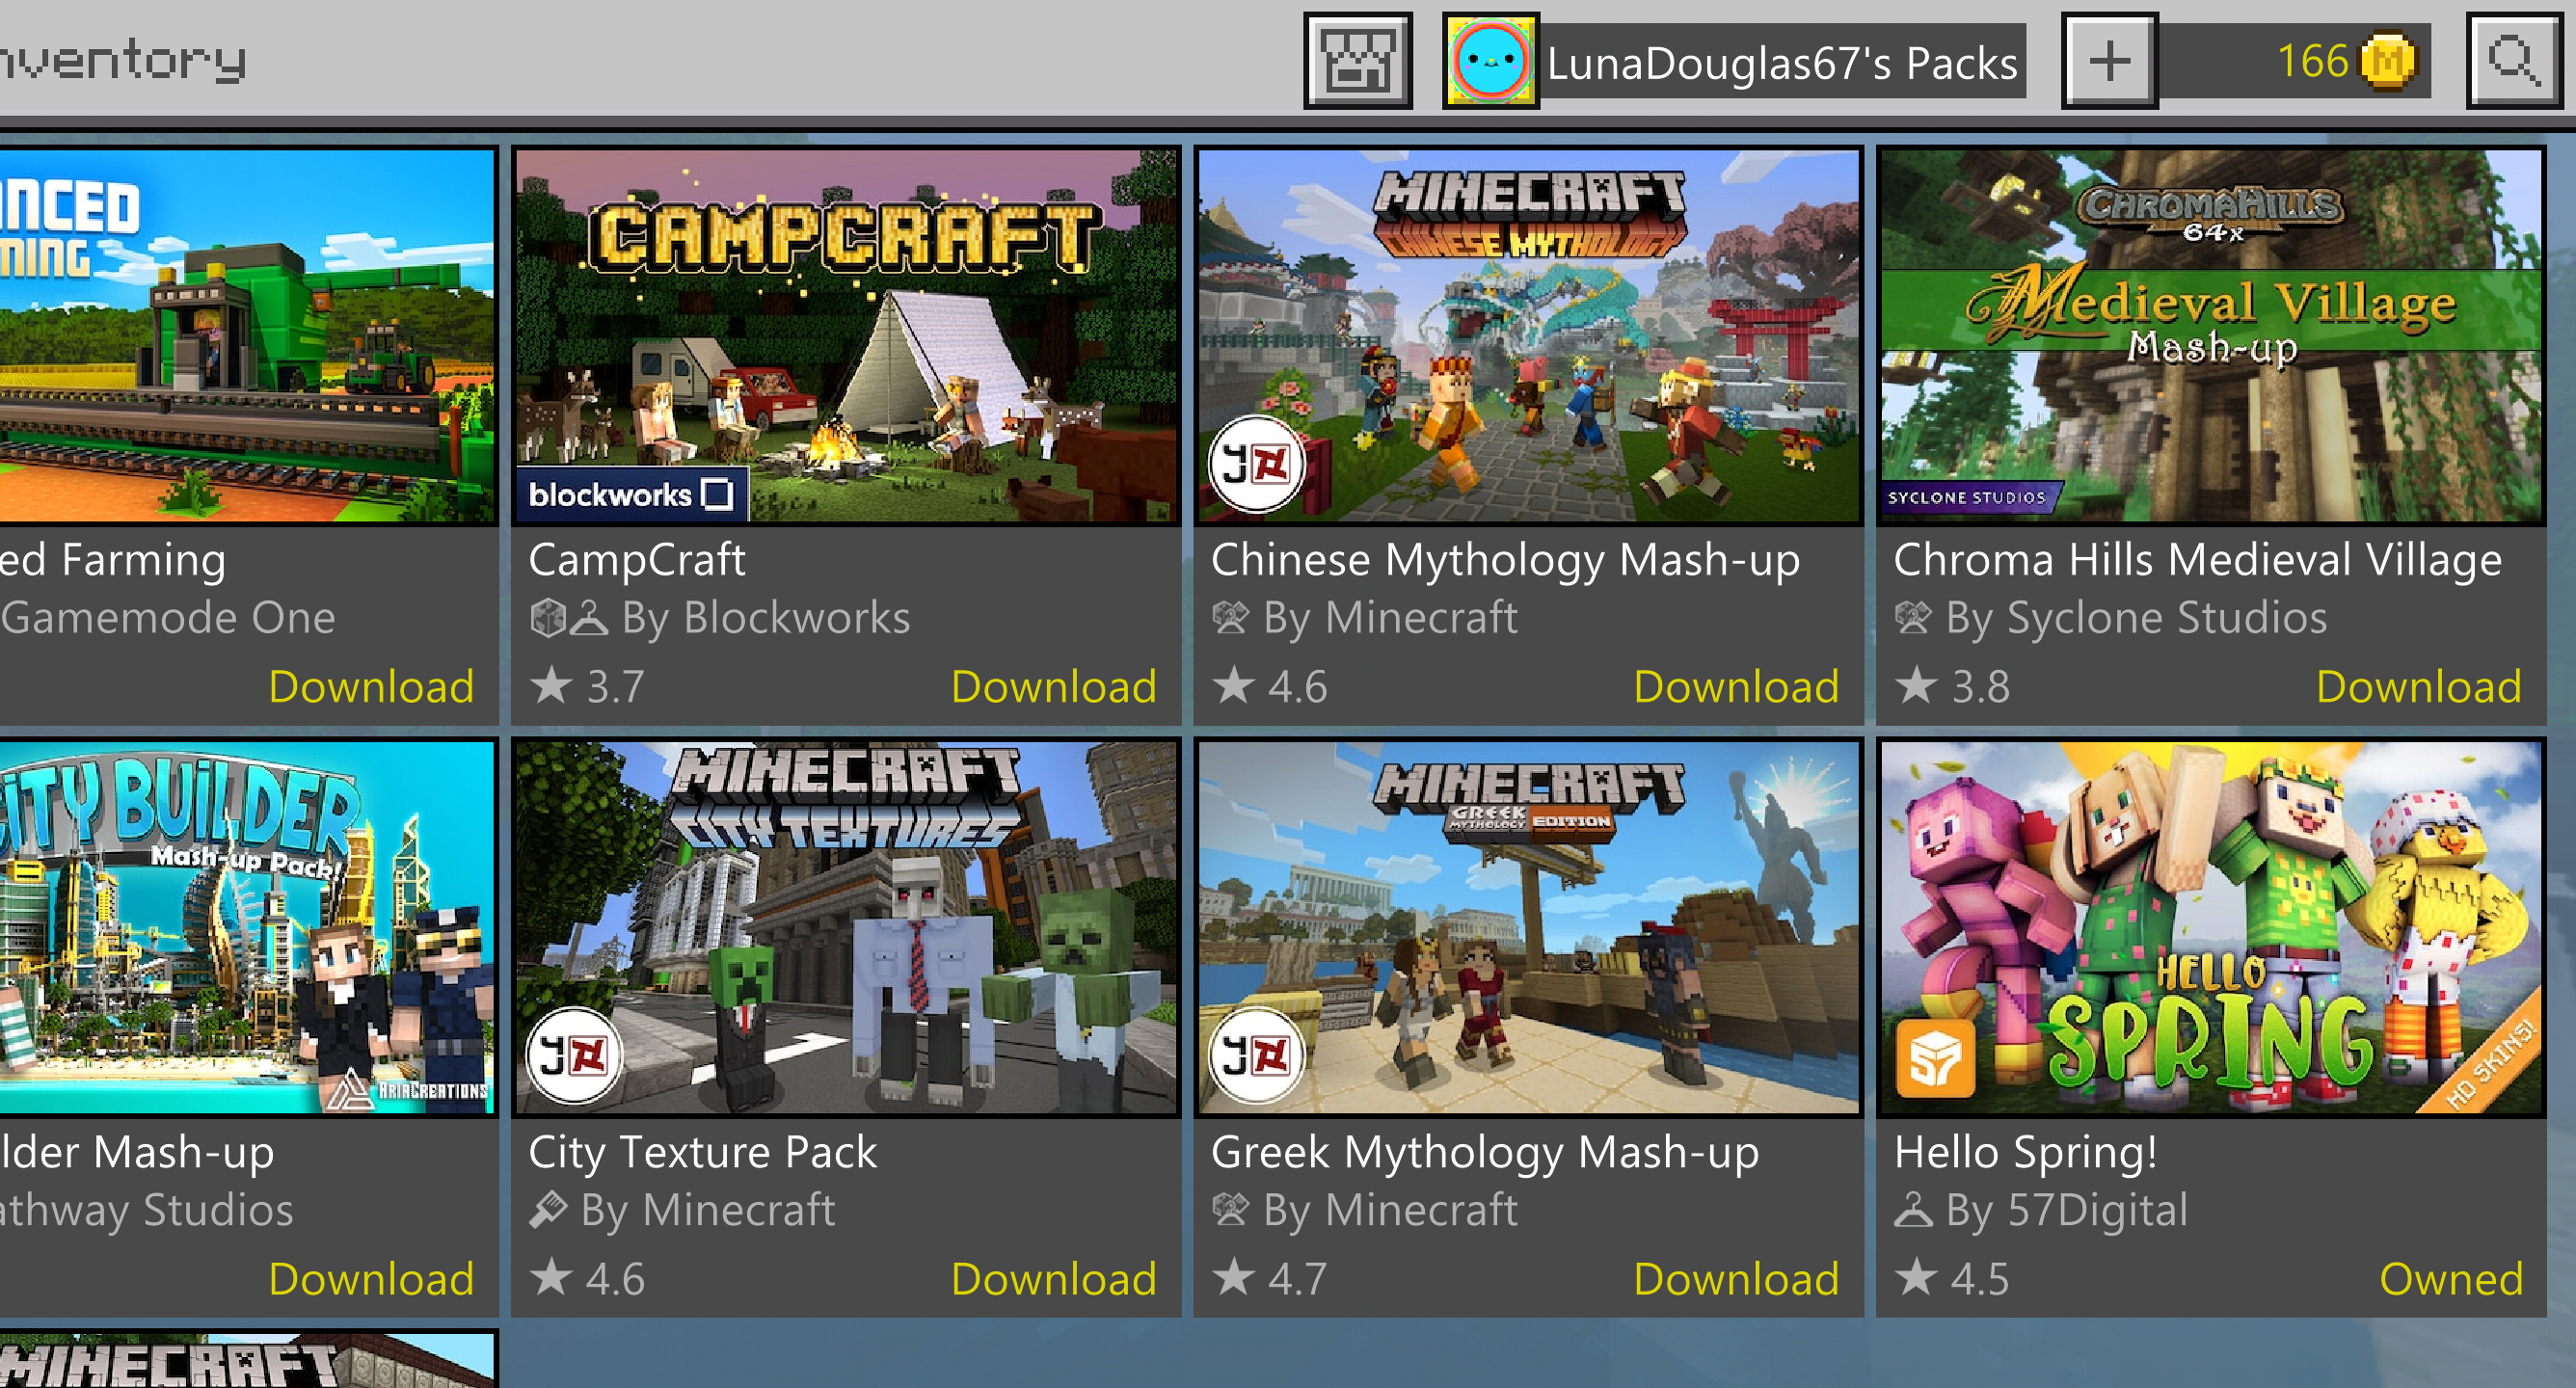 Minecraft DLC not showing as purchased [IMG]